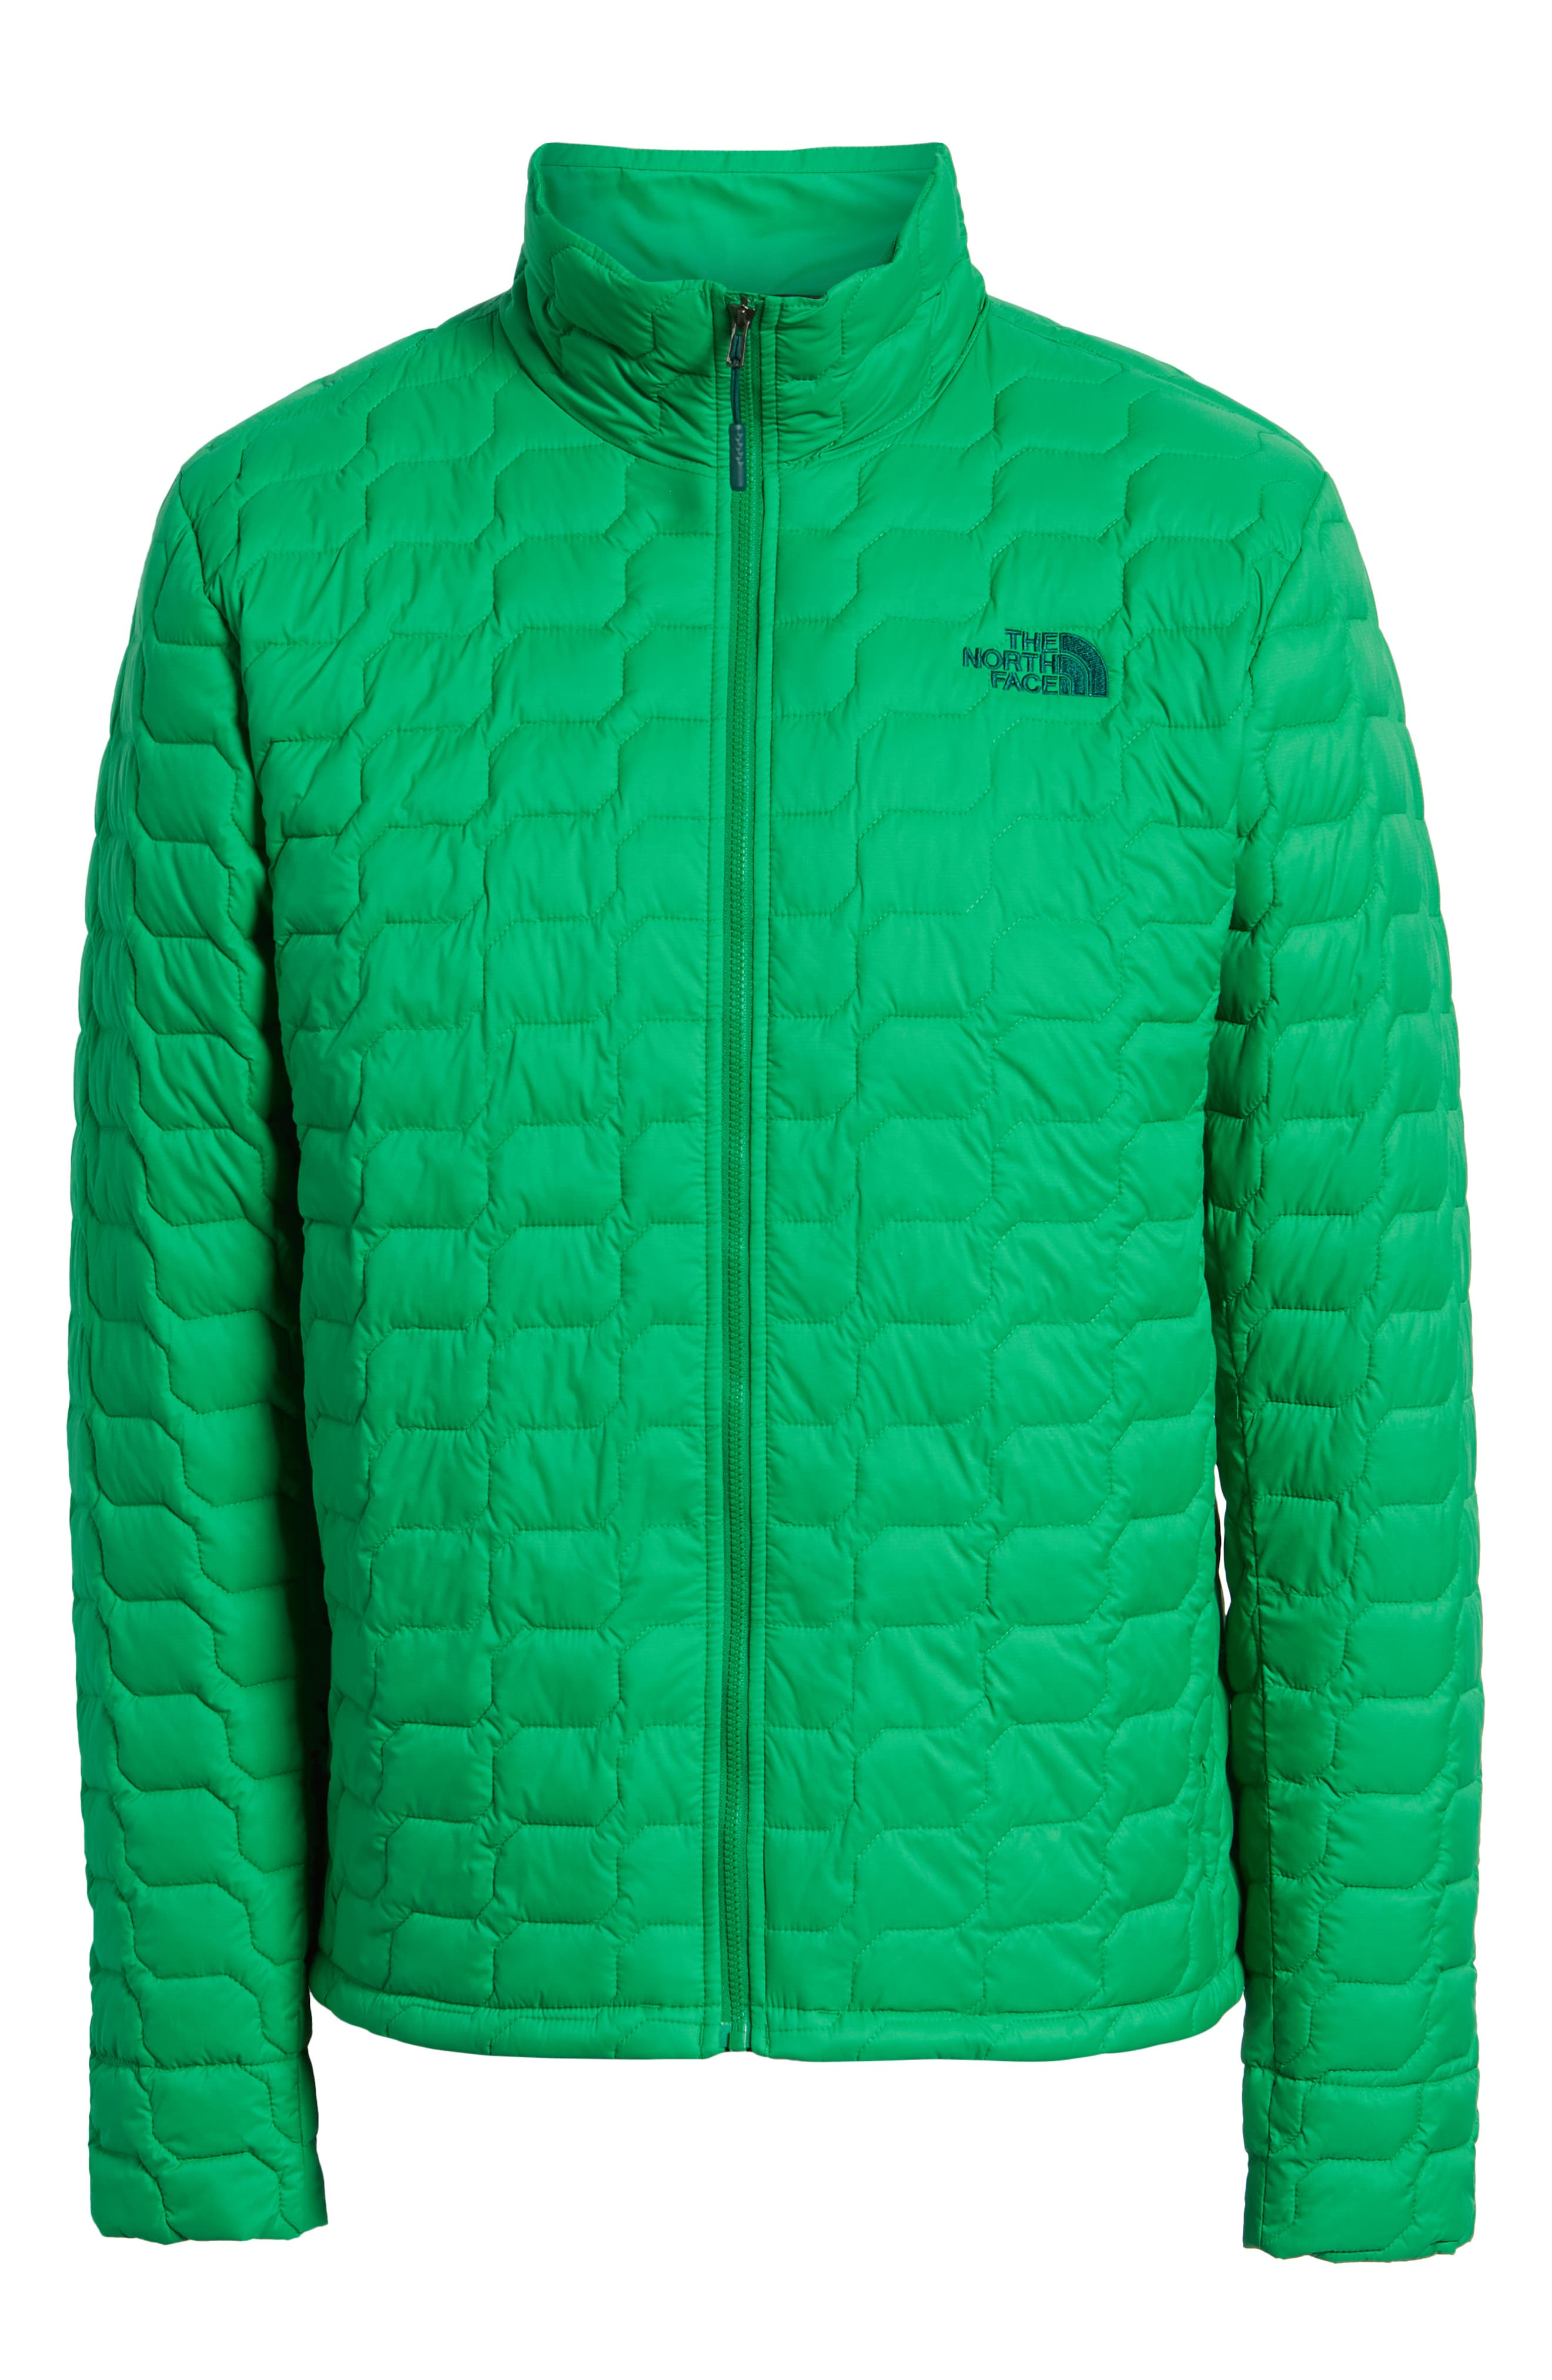 THE NORTH FACE,                             ThermoBall<sup>™</sup> Jacket,                             Alternate thumbnail 6, color,                             PRIMARY GREEN MATTE